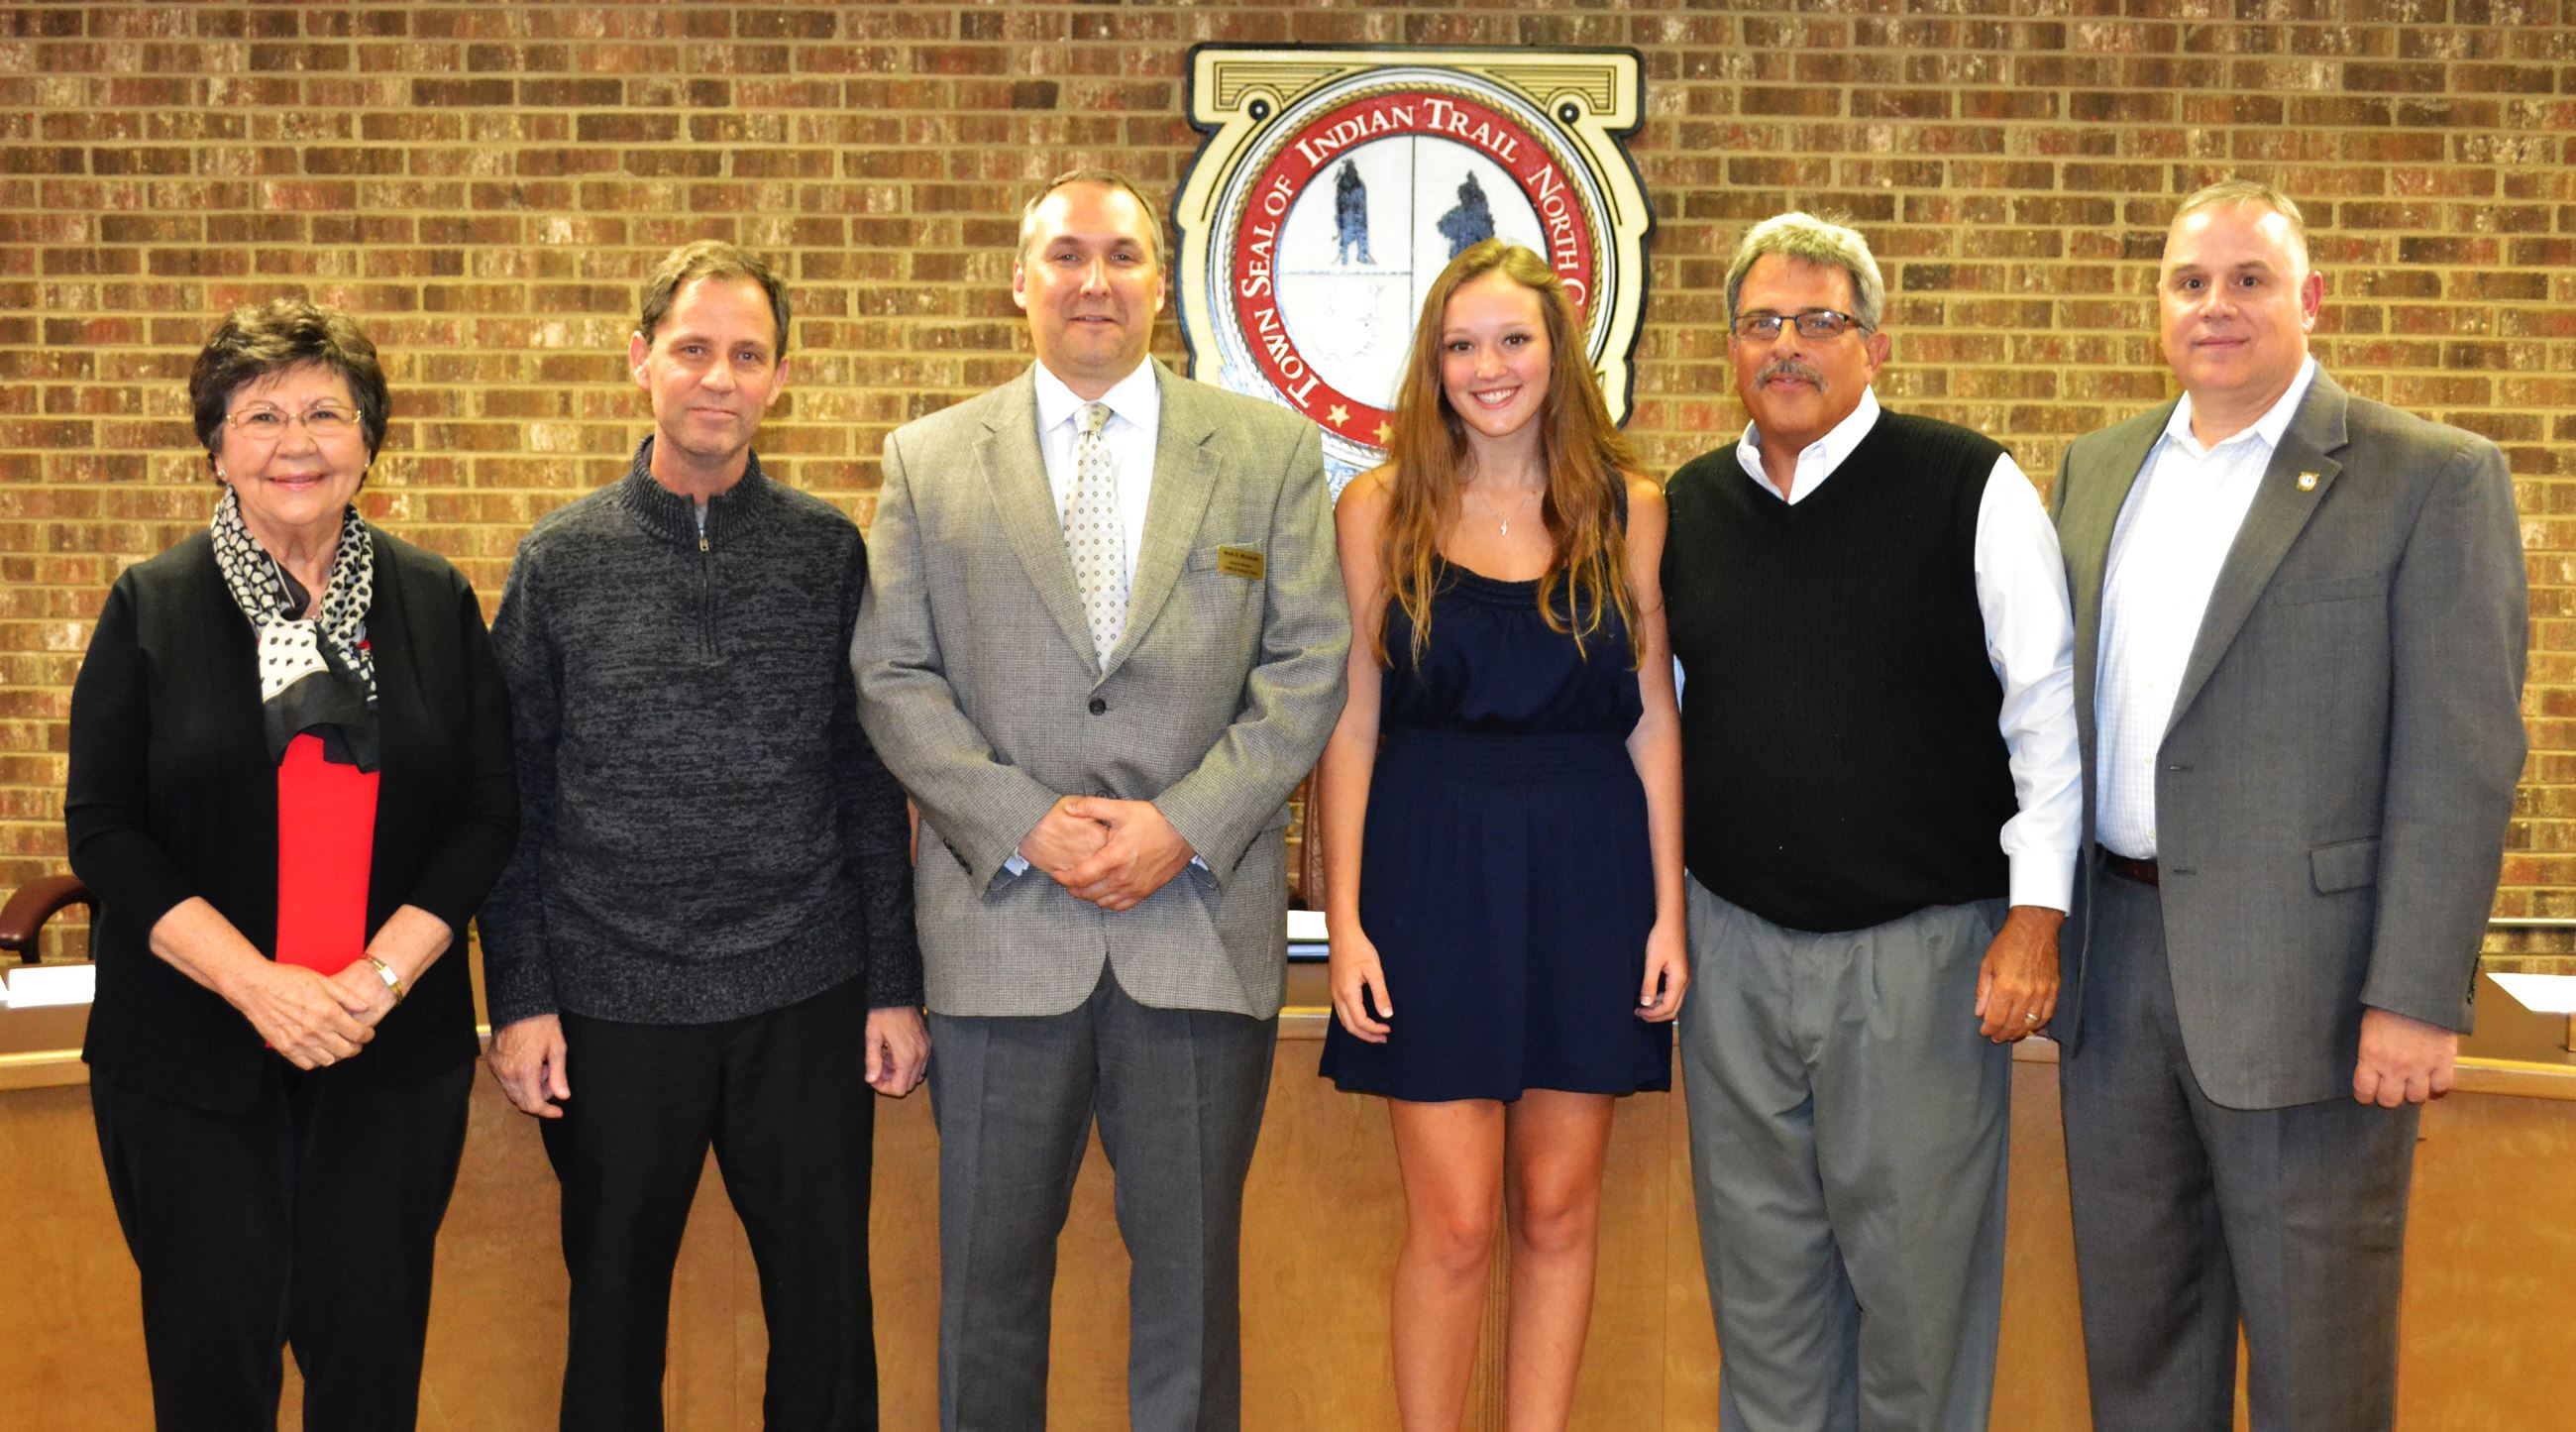 Kayla Price with the Indian Trail Town Council